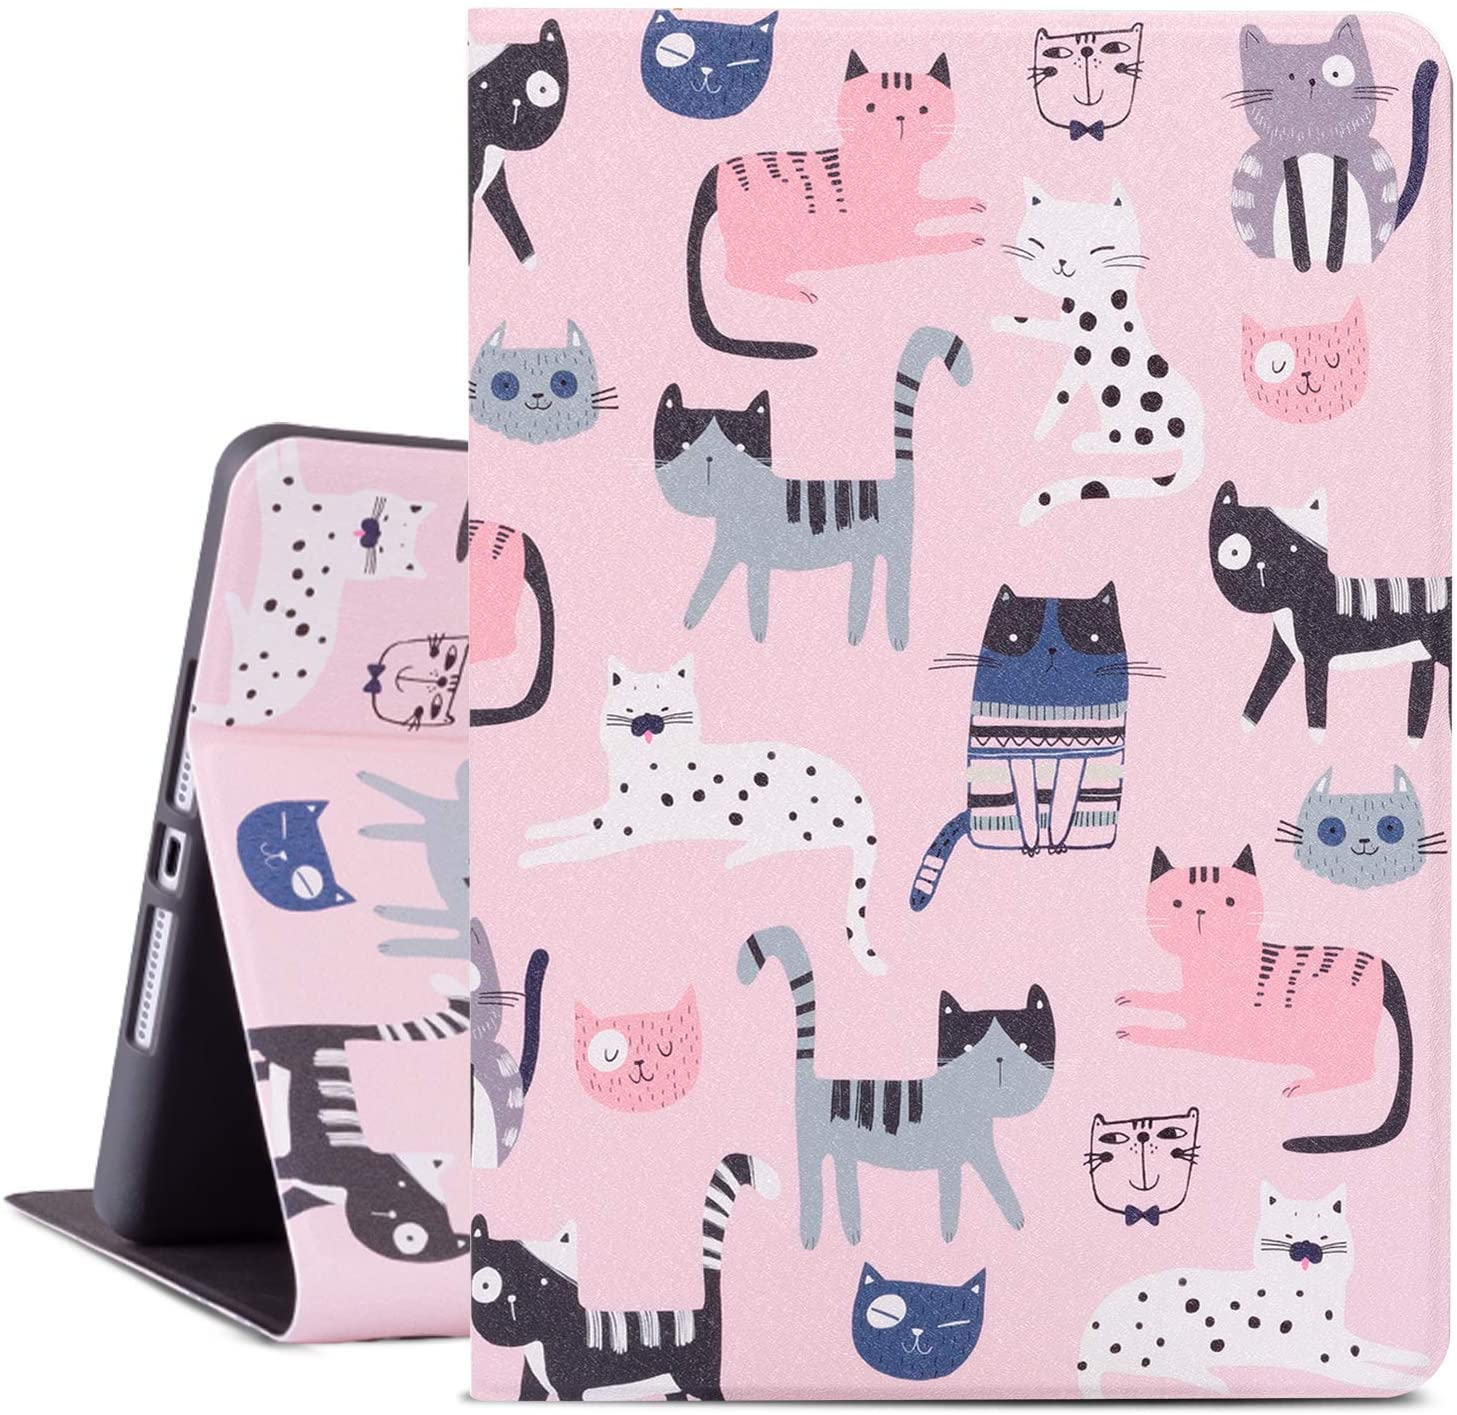 Cutebricase iPad 8th Gen Case 2020, iPad 7th Generation Case, Pink Cats iPad 10.2 Inch Case 2019 Protective Cover, Multi-Angle Viewing Case with Adjustable Stand Auto Wake/Sleep Function (Cats)